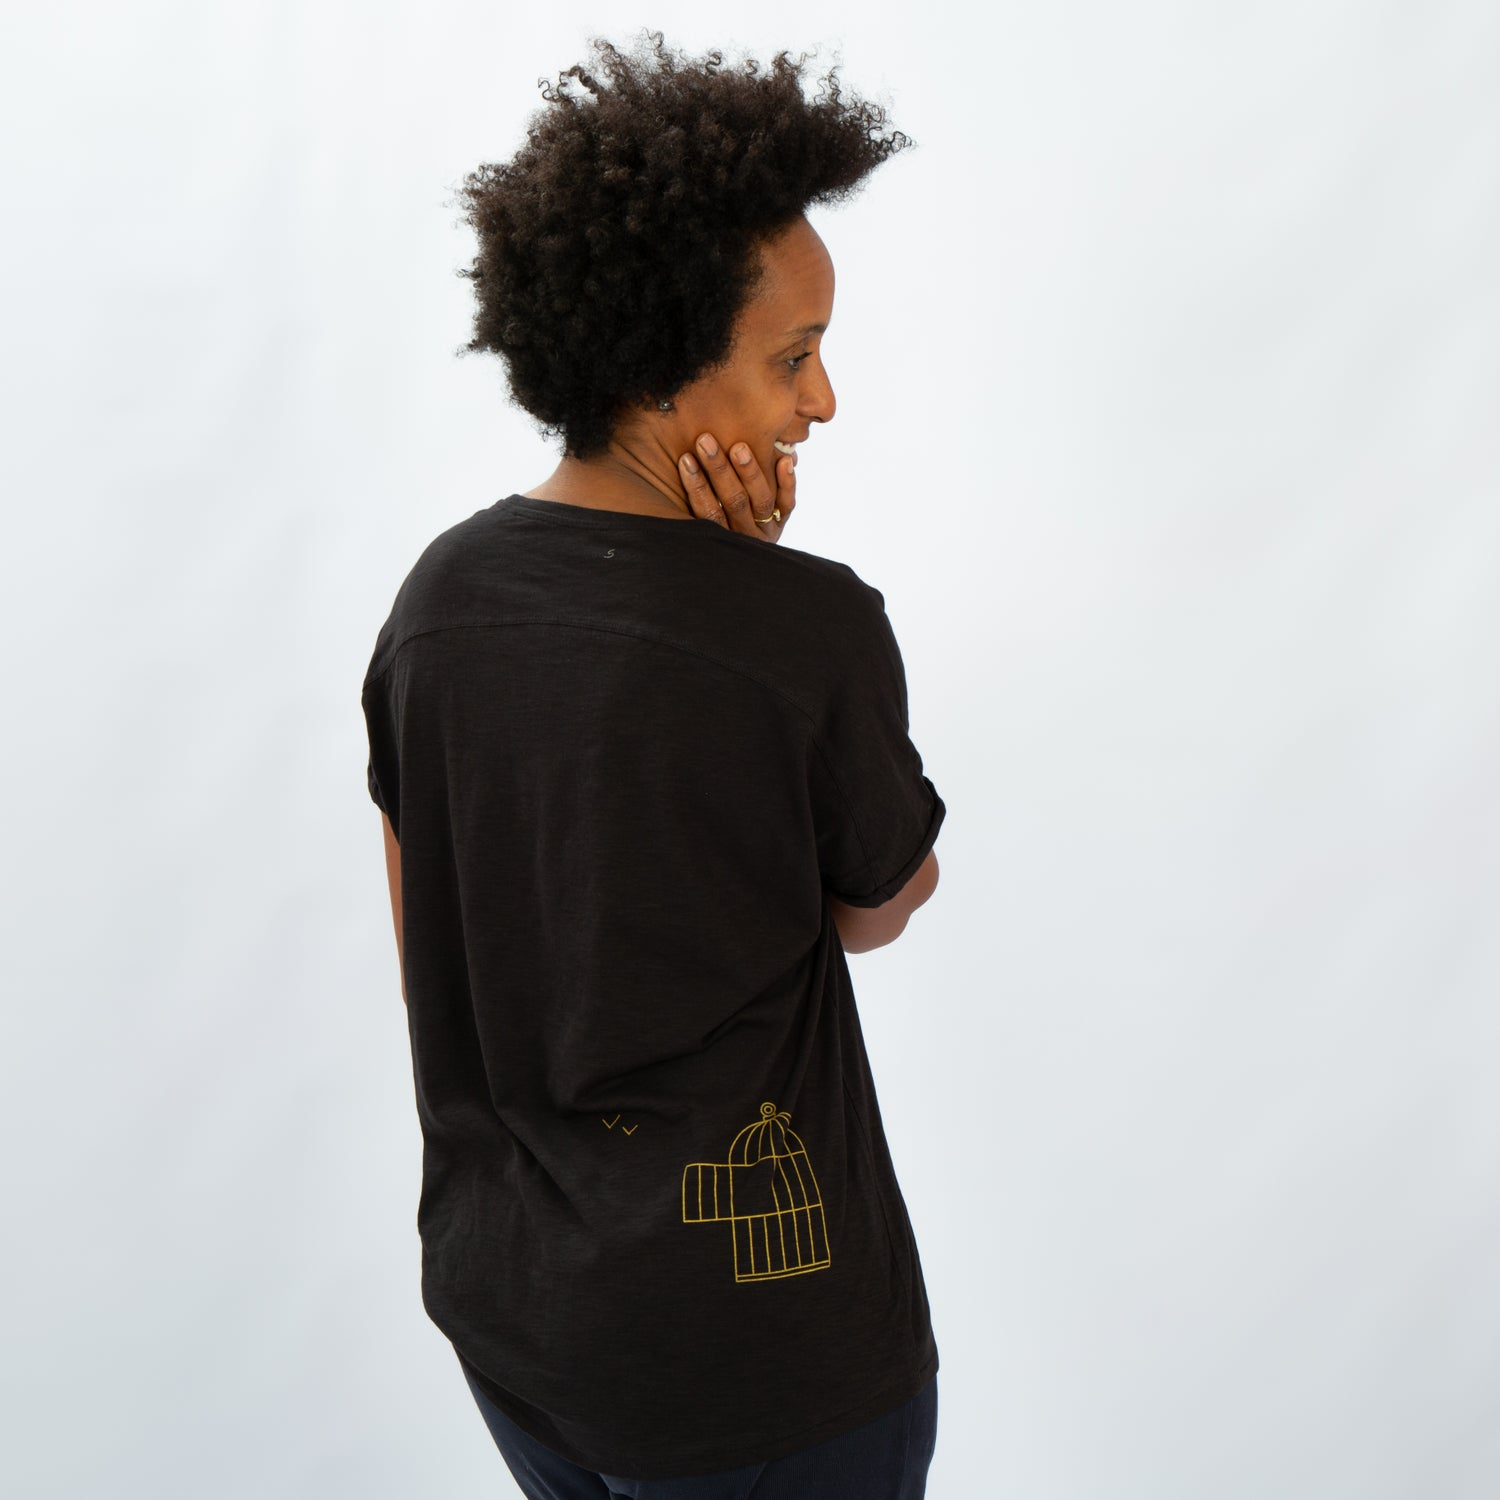 Image of T-SHIRT WOMAN short sleeve BIRDCAGE (on the back) black